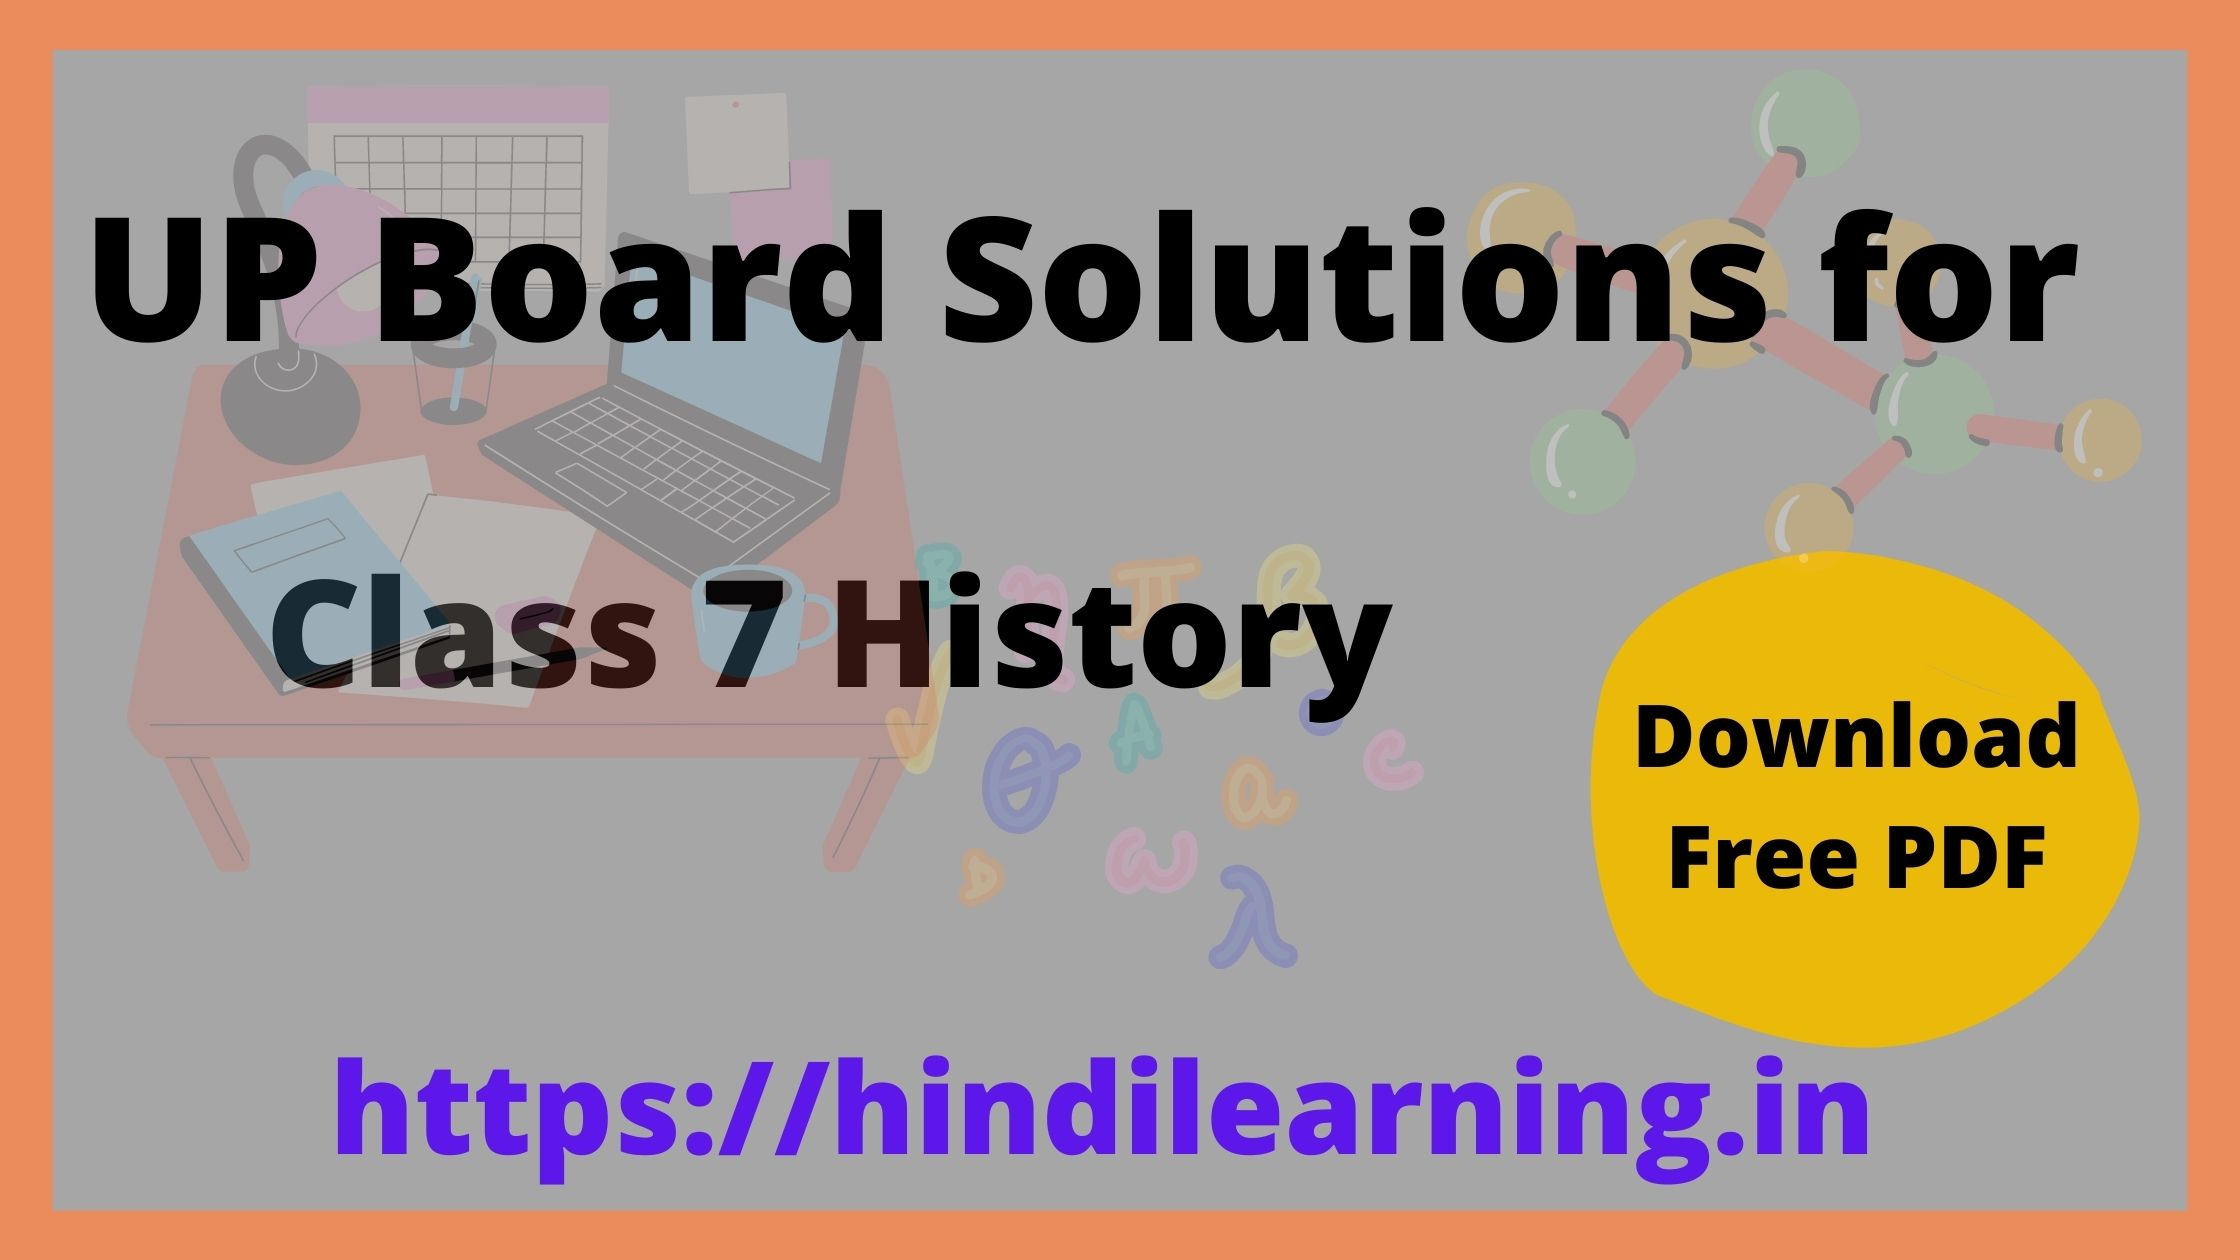 UP Board Solutions for Class 7 History (इतिहास)